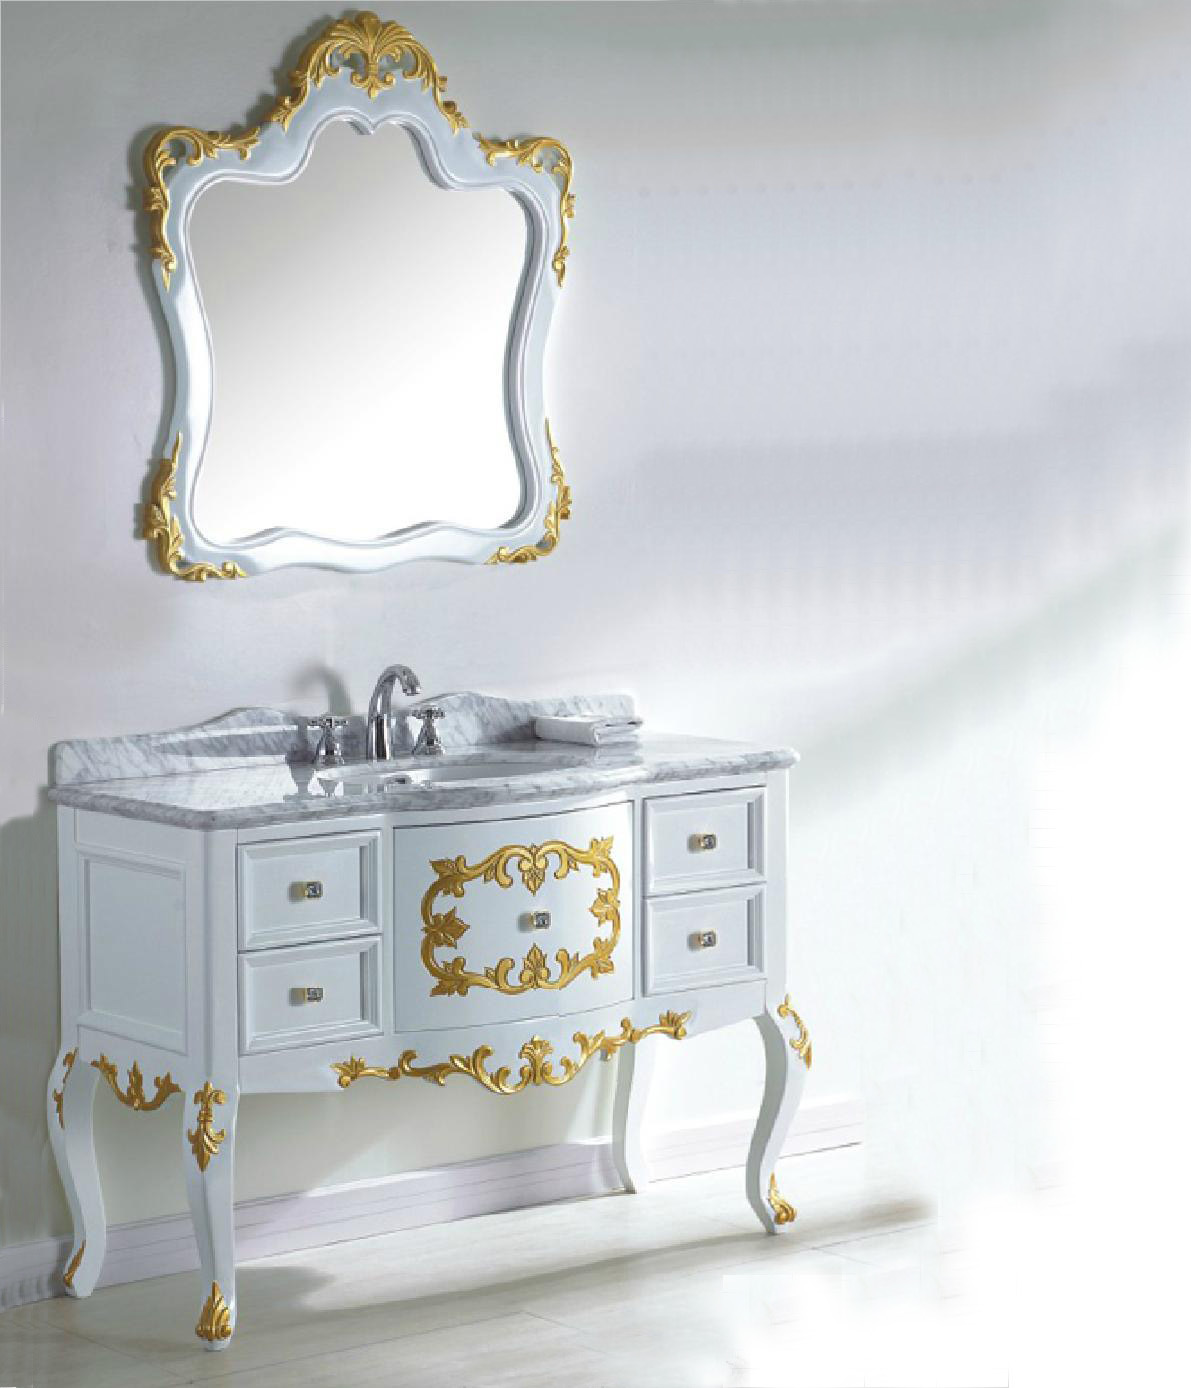 China 2012 Antique White Bathroom Vanities White Wash Vanity G8152A s &a